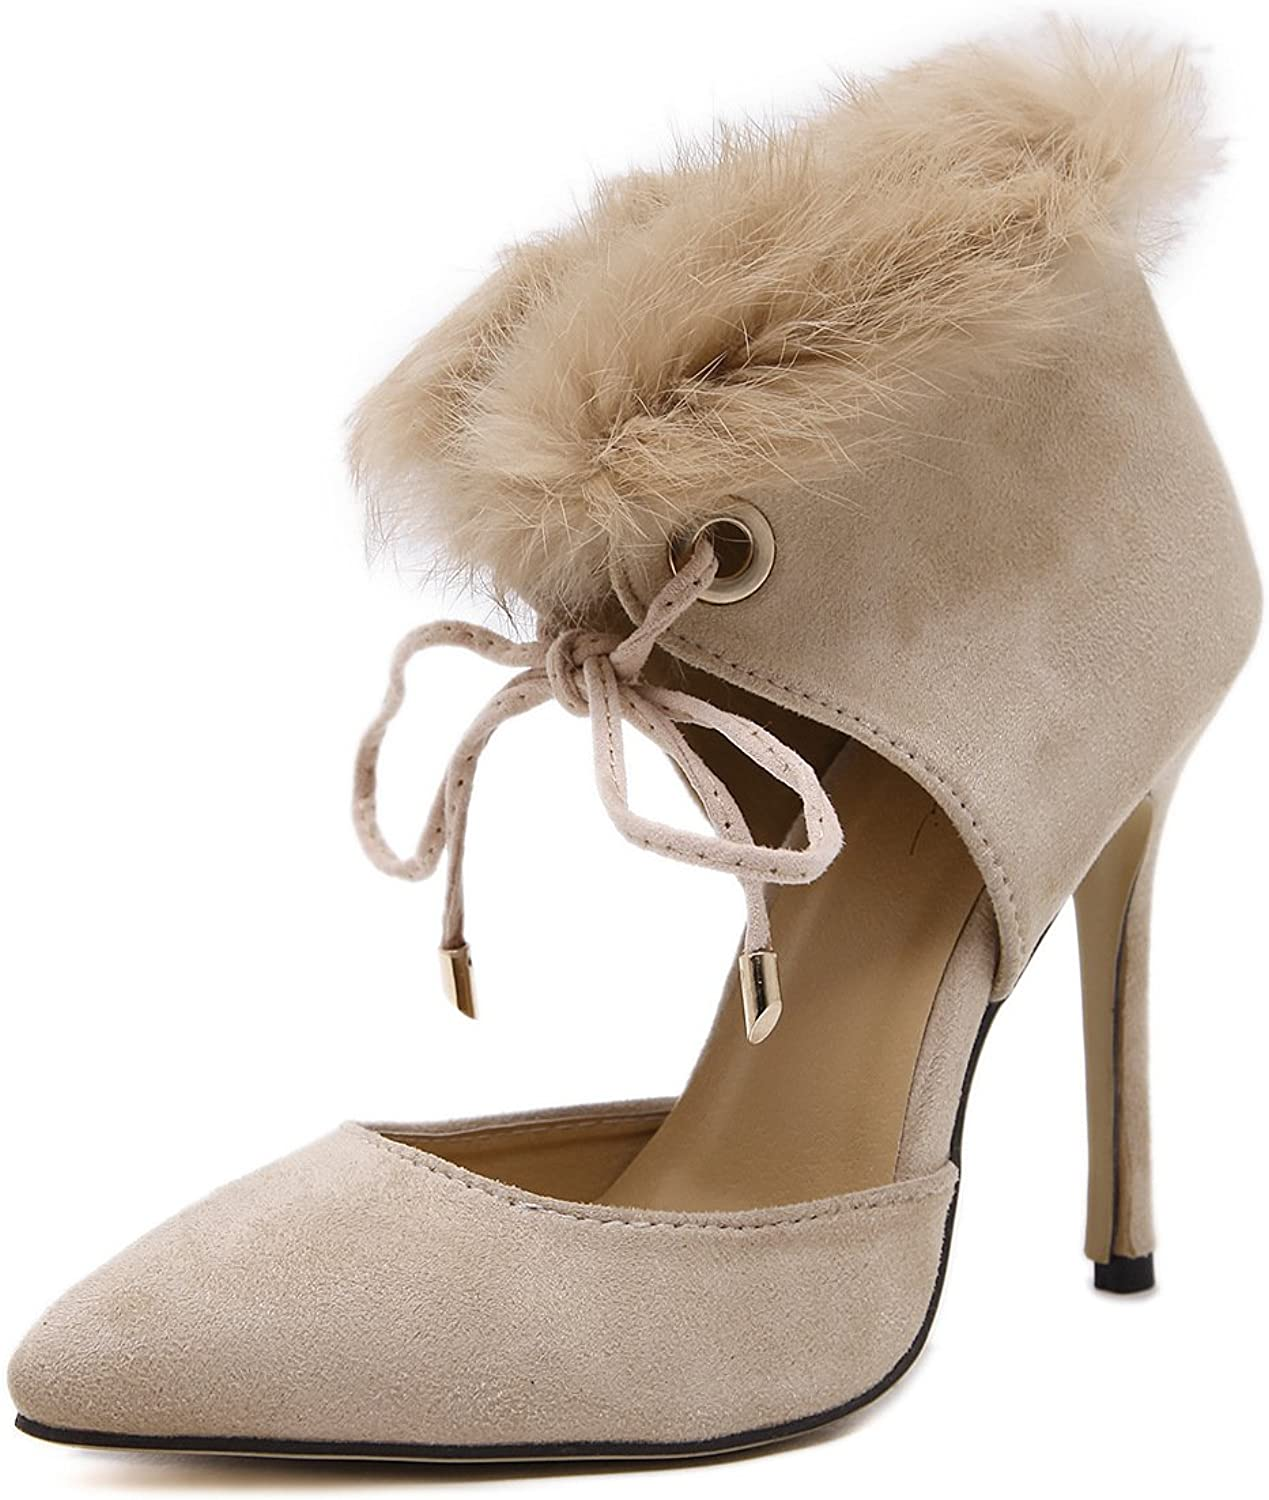 shoesmaker's heart 2017 New Super Sexy High-Heeled shoes Really Plush High shoes Beige Female Club